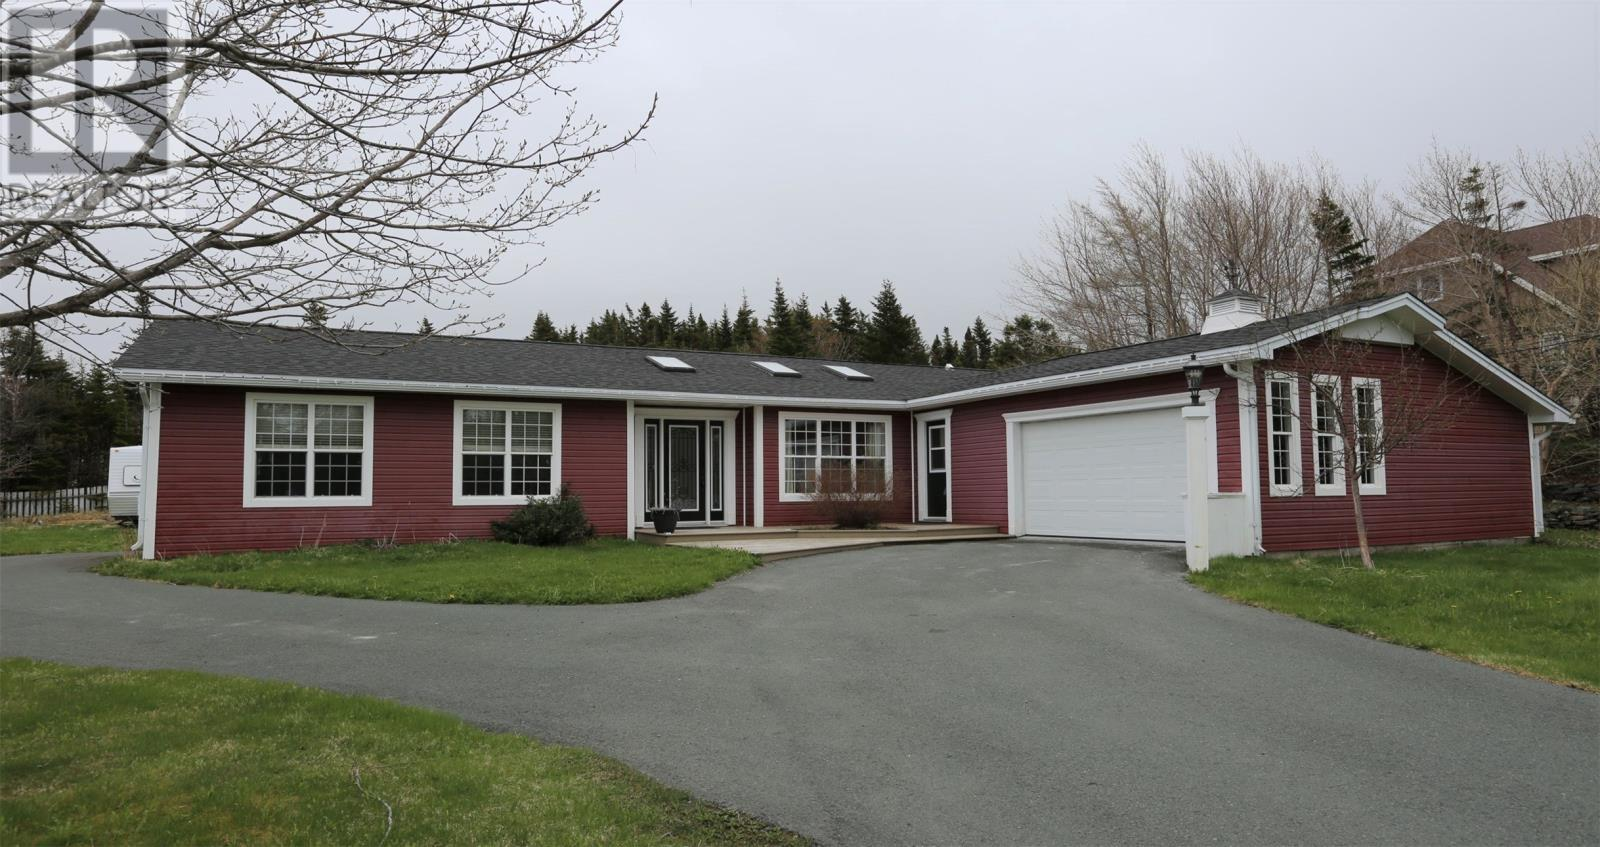 Removed: 55 Savannah Park Drive, St Johns, NL - Removed on 2019-06-28 08:24:33